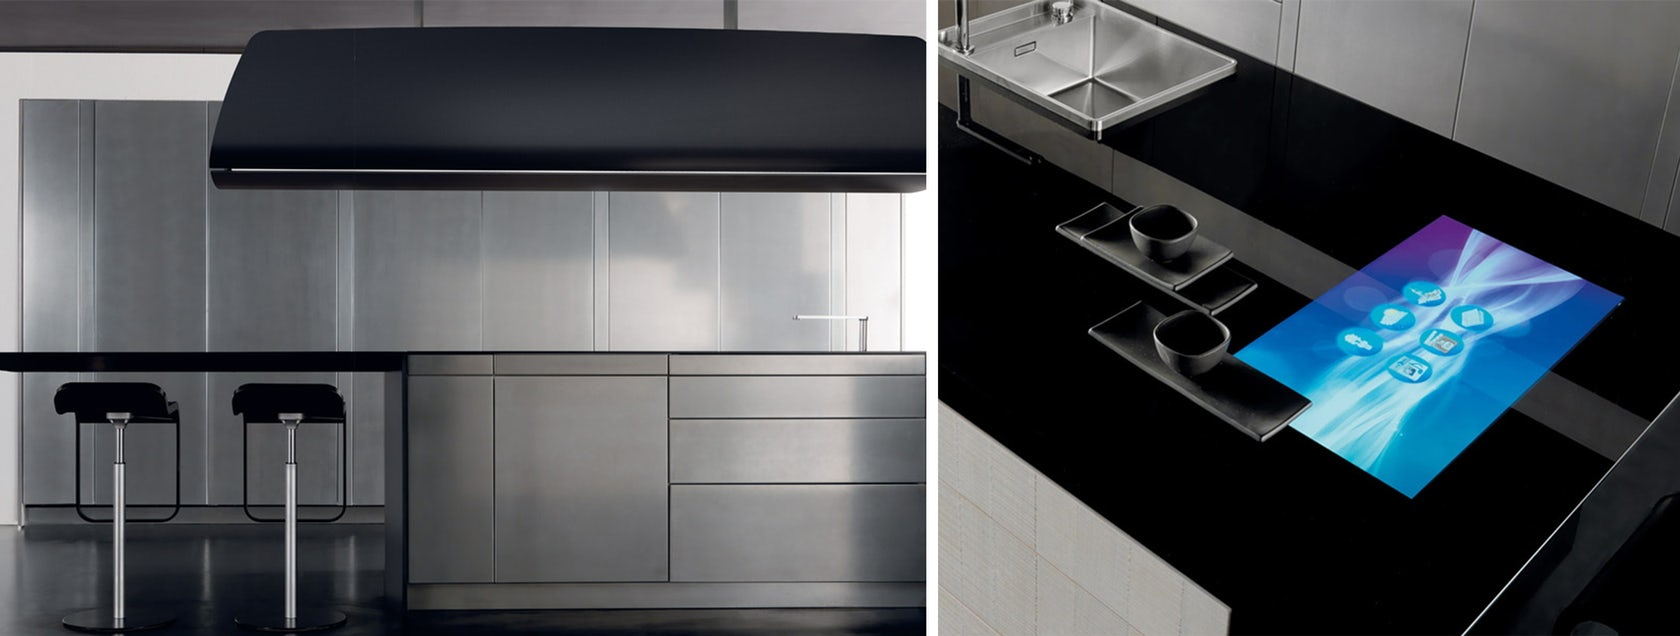 Toncelli's Futuristic Kitchens Are Made From Marble, Carbon Fiber ...